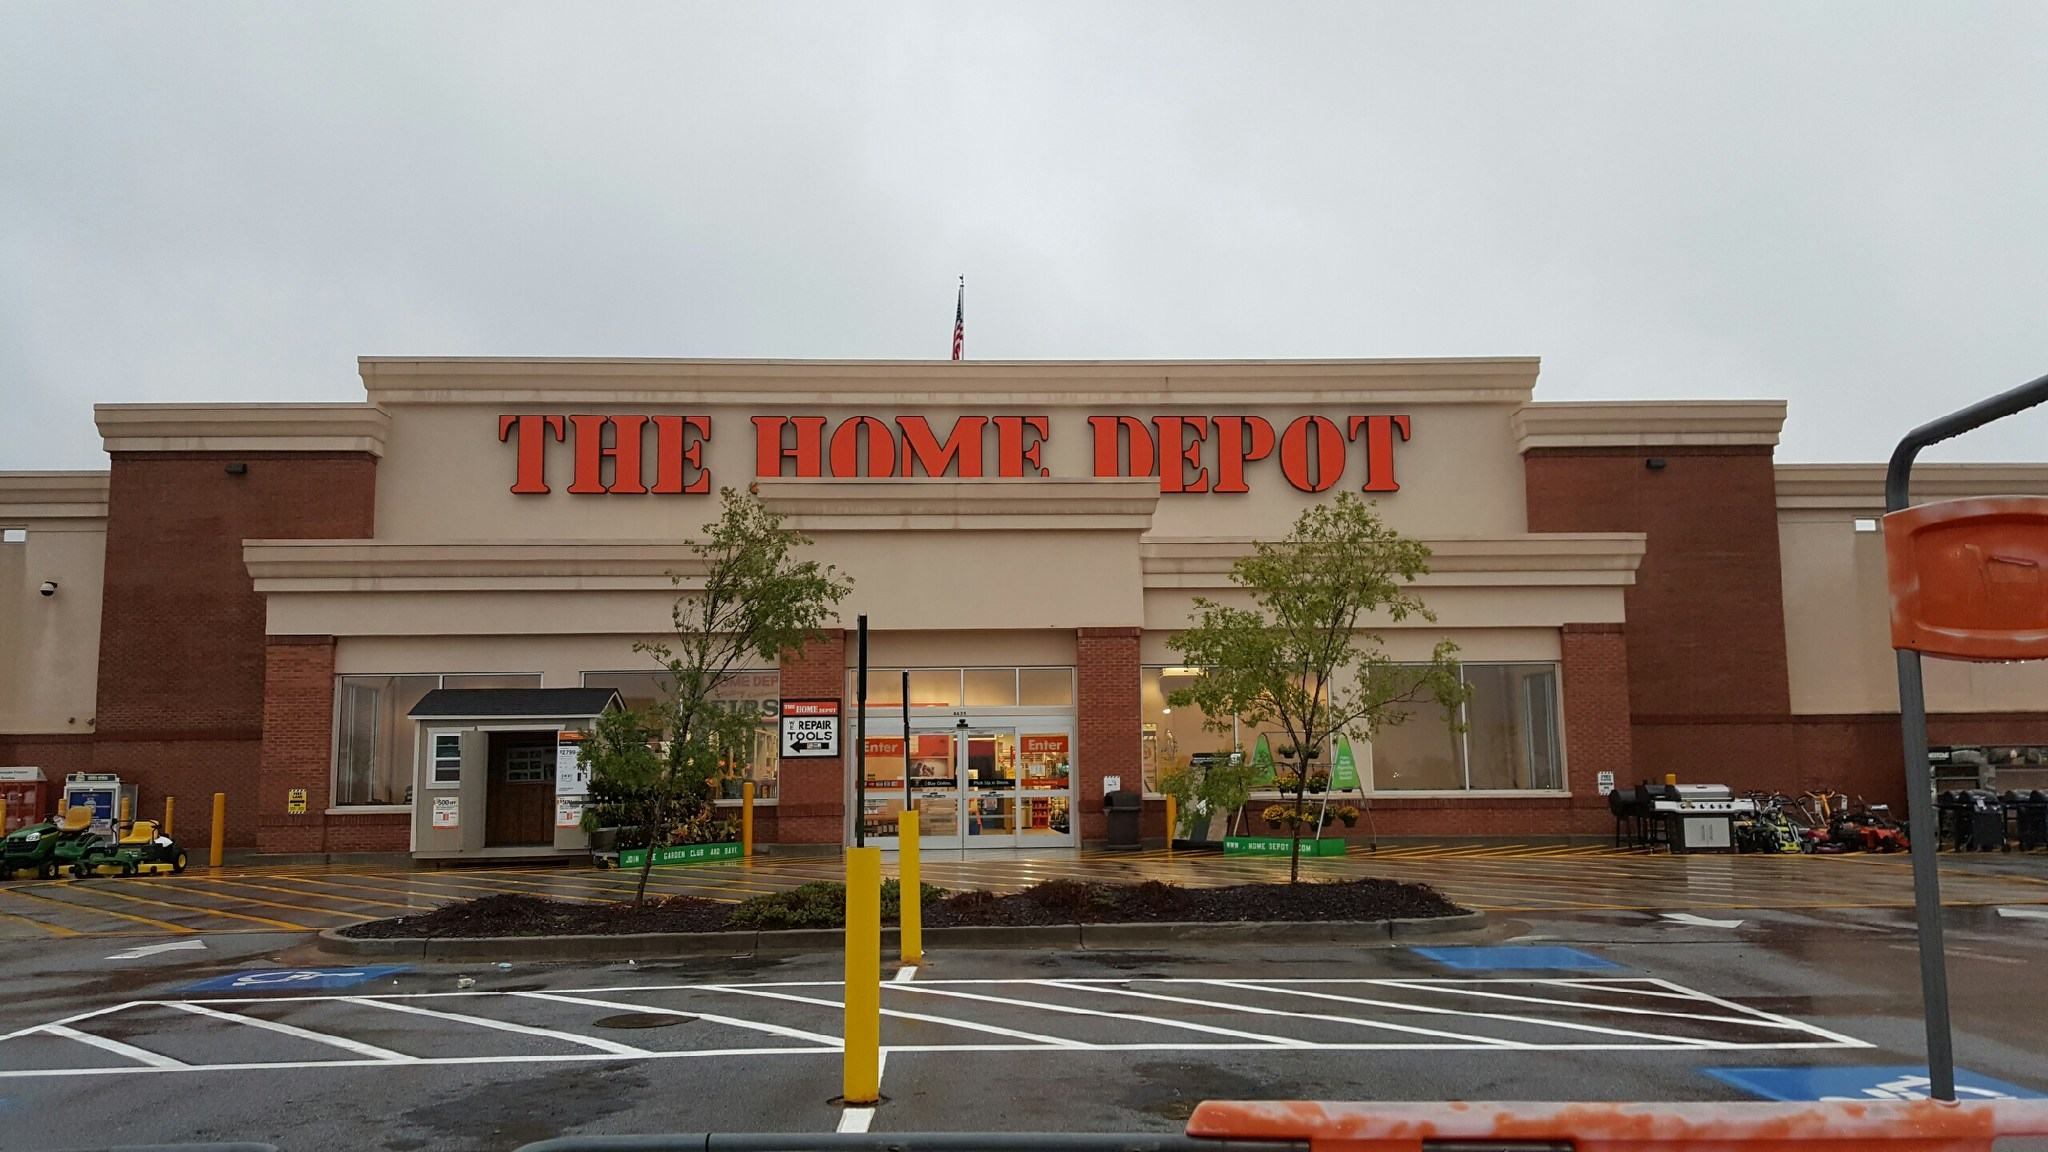 the home depot in macon ga whitepages